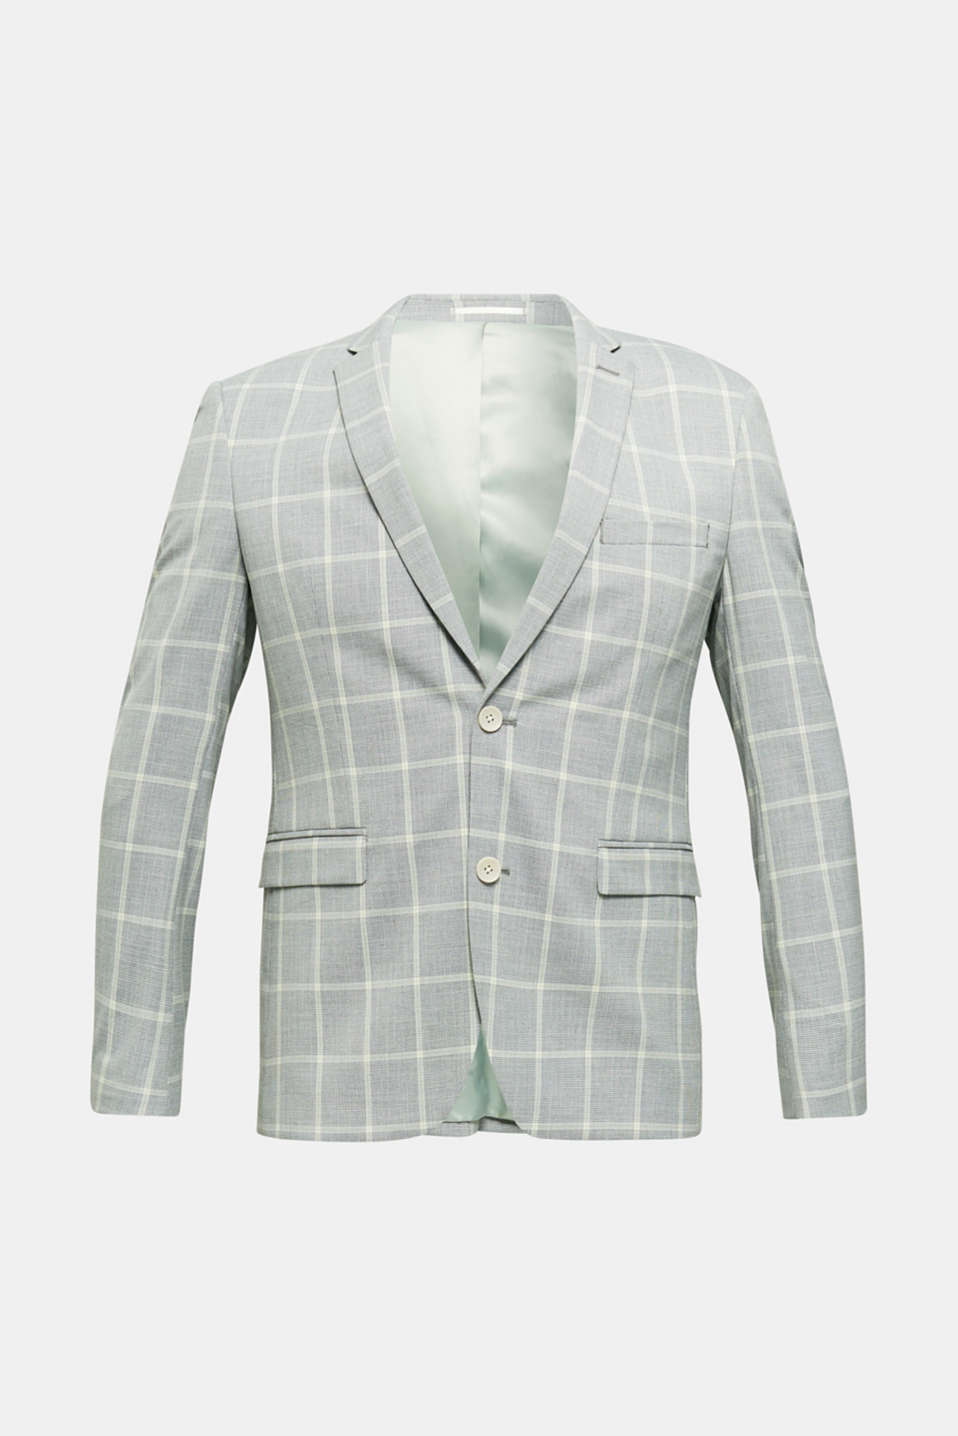 SUMMER CHECK mix + match tailored jacket, PASTEL GREEN 3, detail image number 6